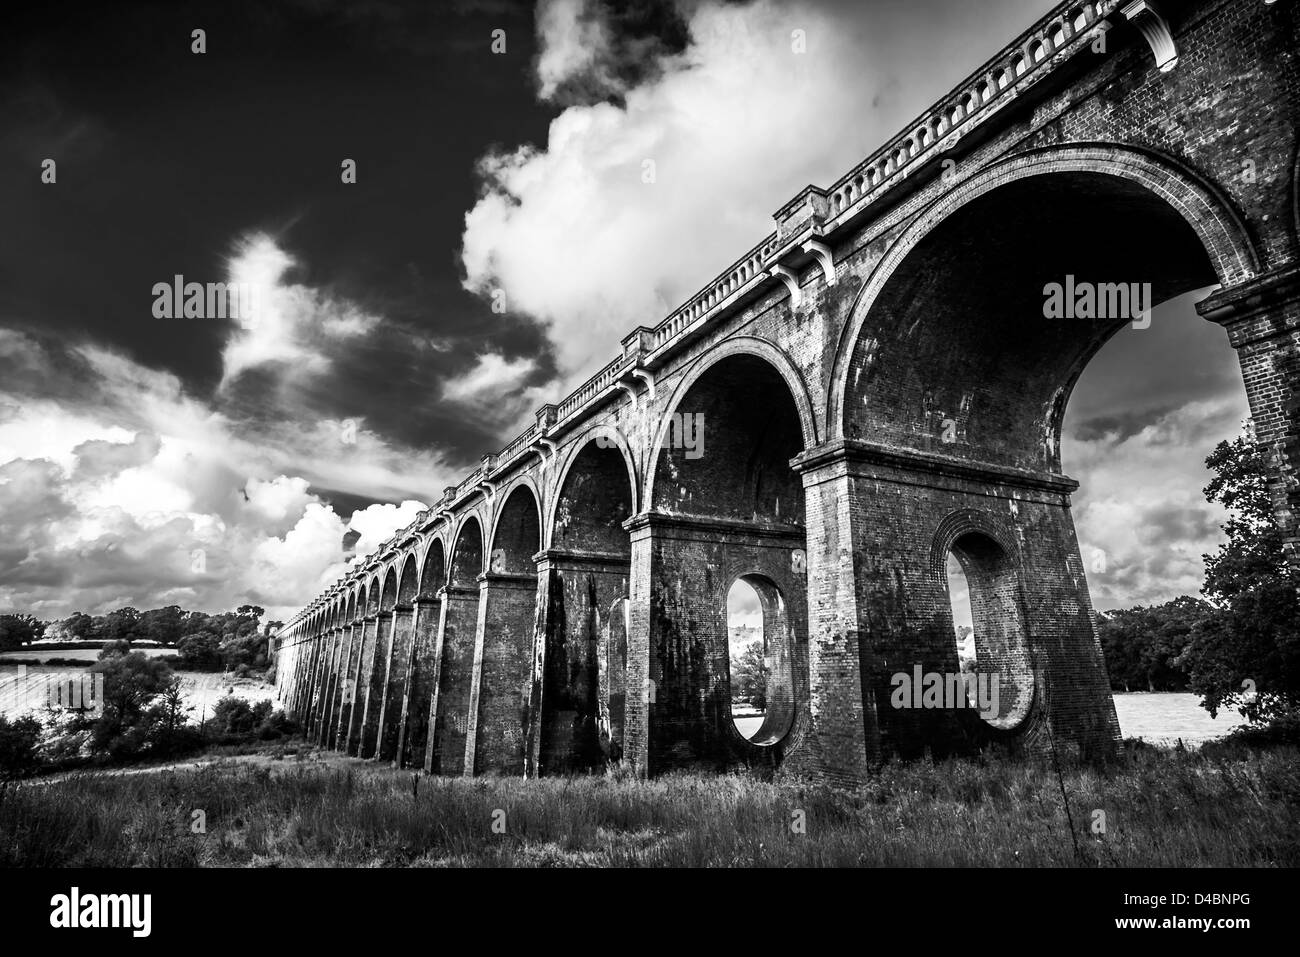 Le noir et blanc Ouse Valley Viaduct Bridge dans le West Sussex, UK Photo Stock